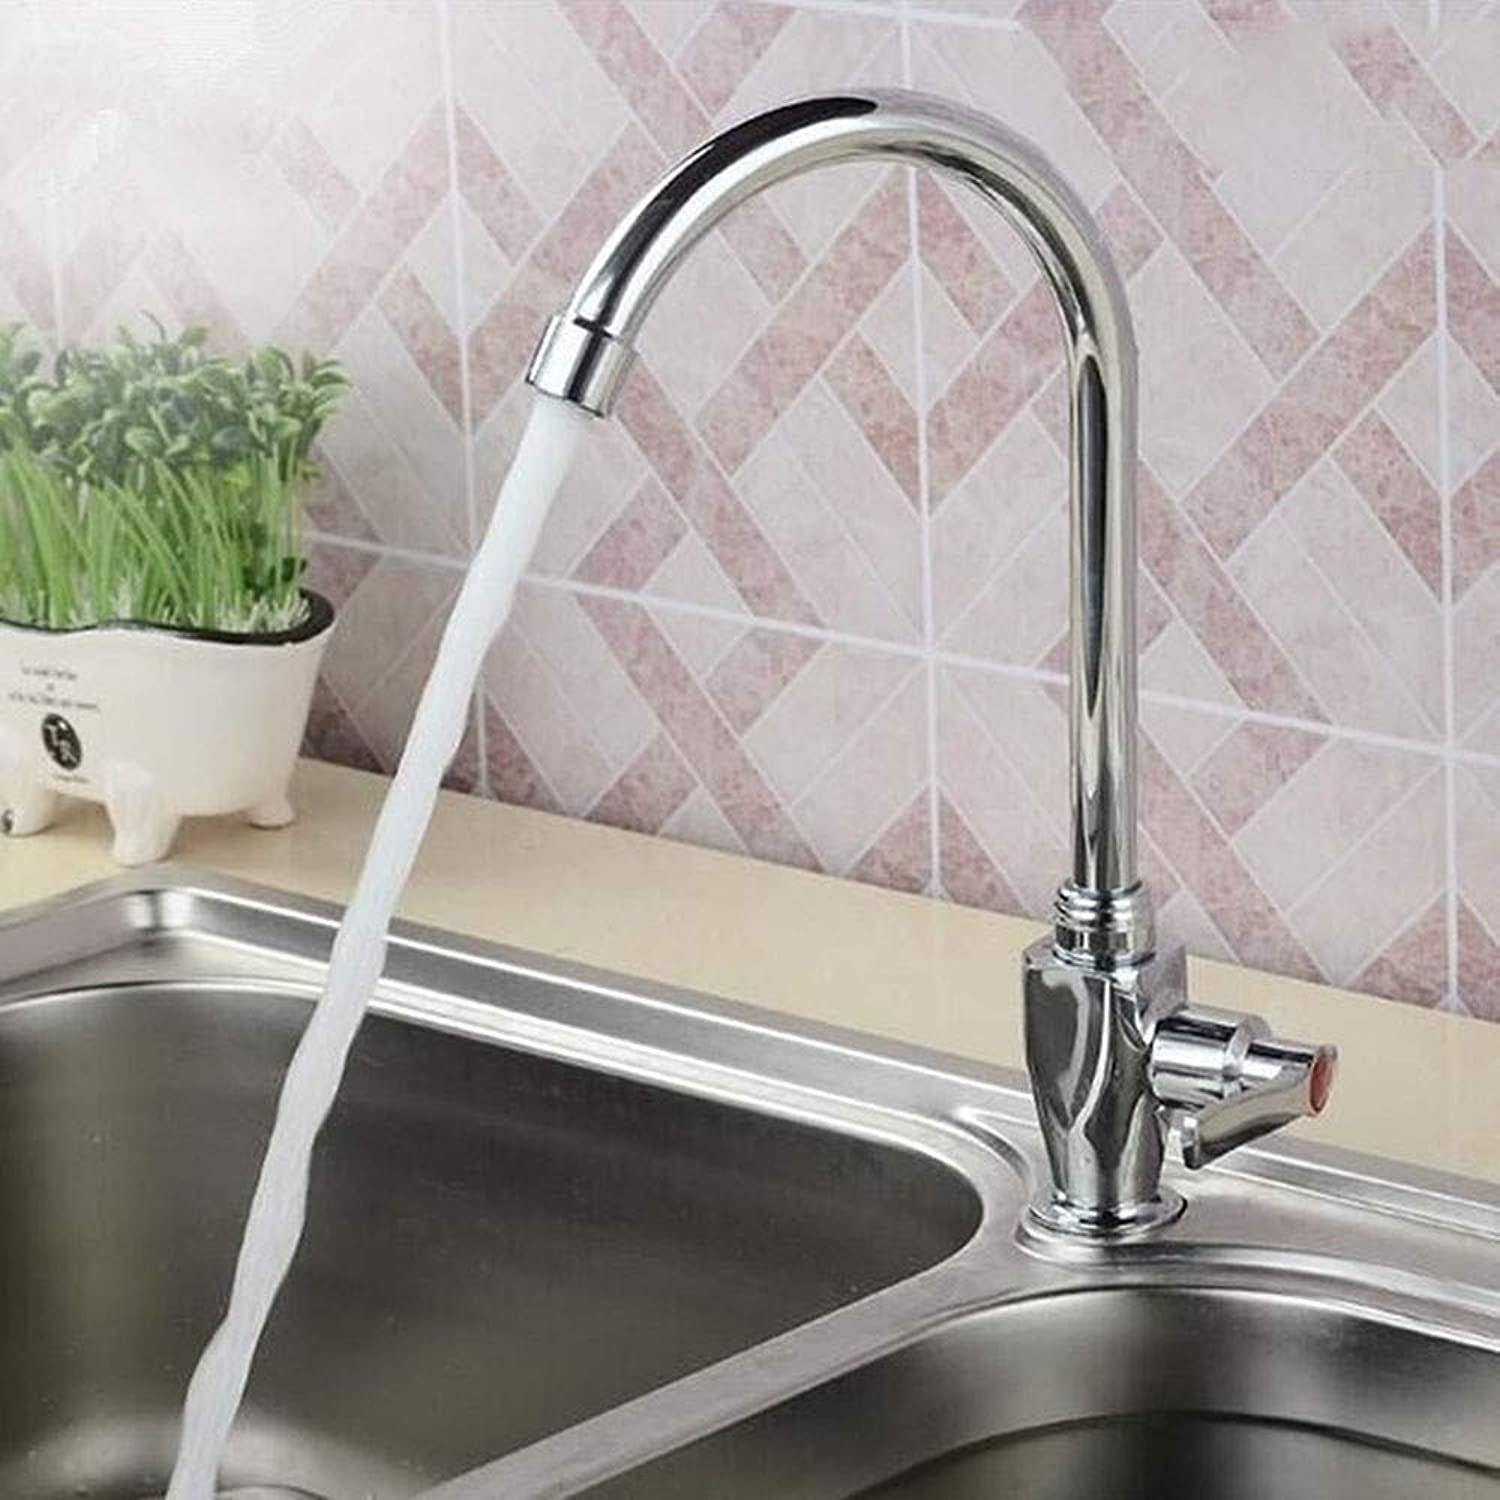 4?Points Single Cold greenical?Sink Sink Single tap?Old gold Cup Quick Open Single Cold Pedestal Basin Faucet Kitchen Sink Faucet Bathroom Sink Faucet